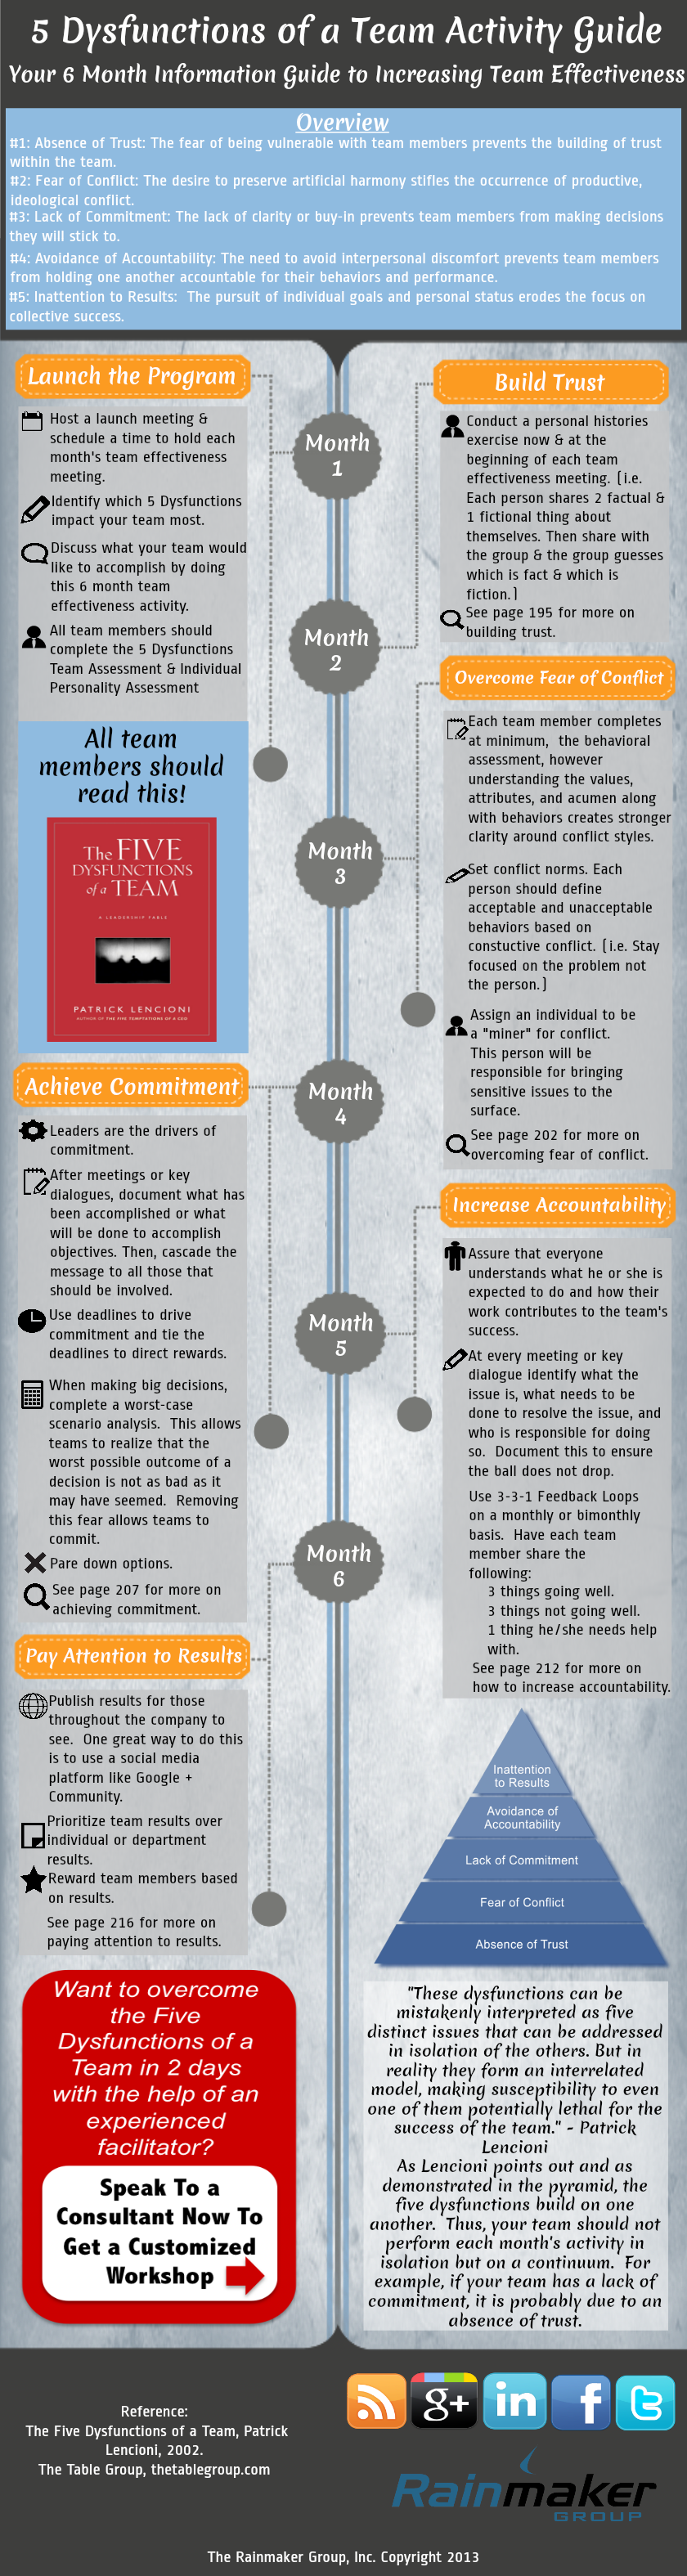 5 Dysfunctions of a Team: Effectiveness Activity Guide